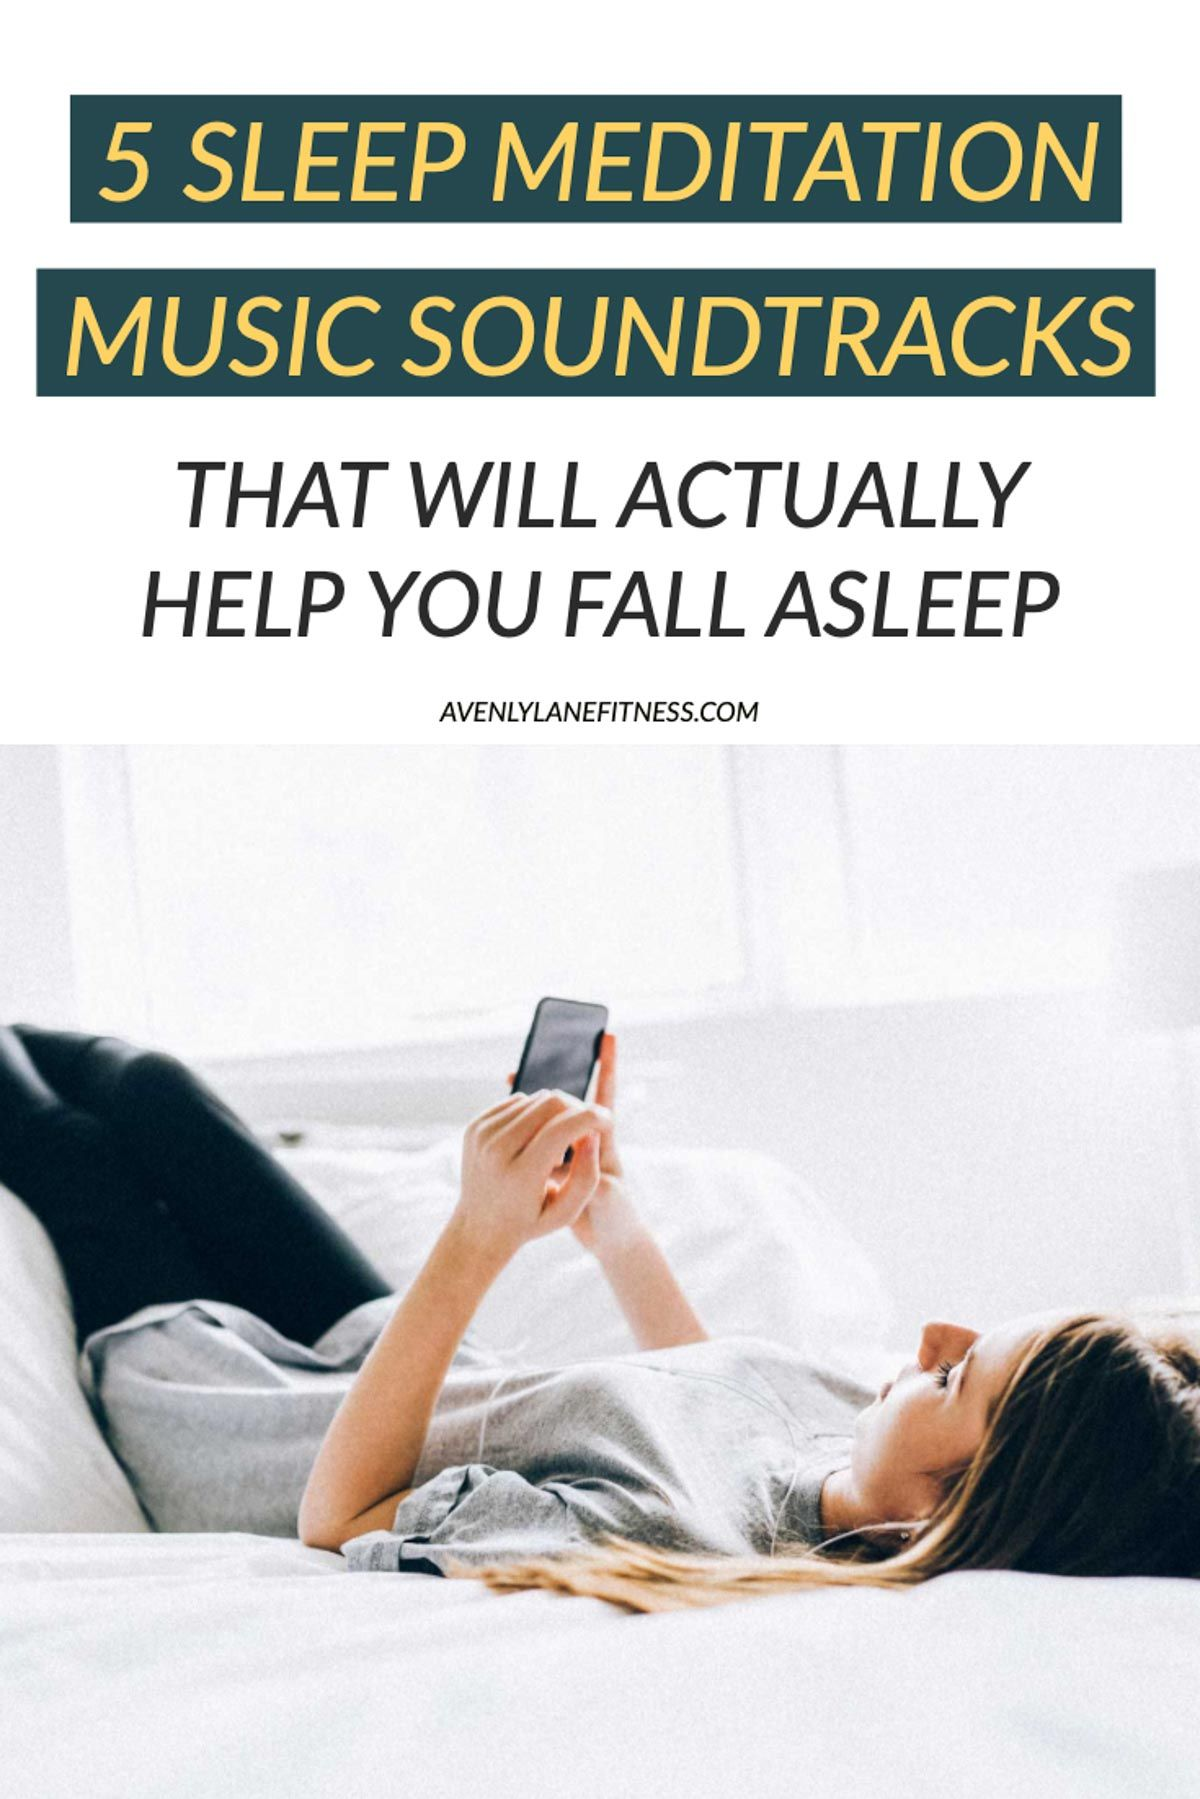 Sleep Meditation Music That Will Help you Fall Asleep Fast